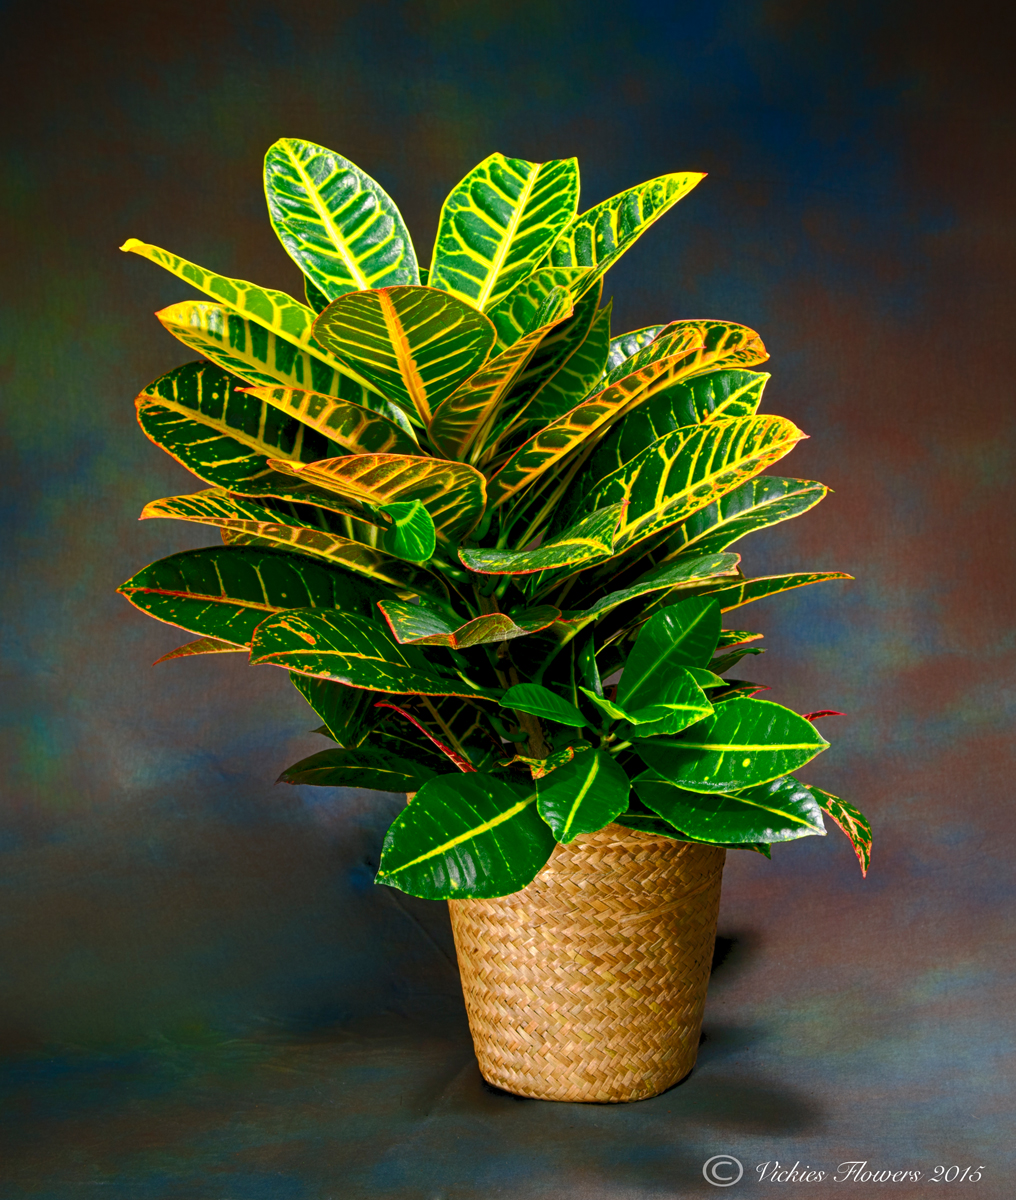 Indoor Plants IP   005 $55 (plus Tax And Delivery) Colorful Croton Plant  With Bright Green And Yellow Foliage In A Wicker Basket. Perfect To  Brighten Up Any ...